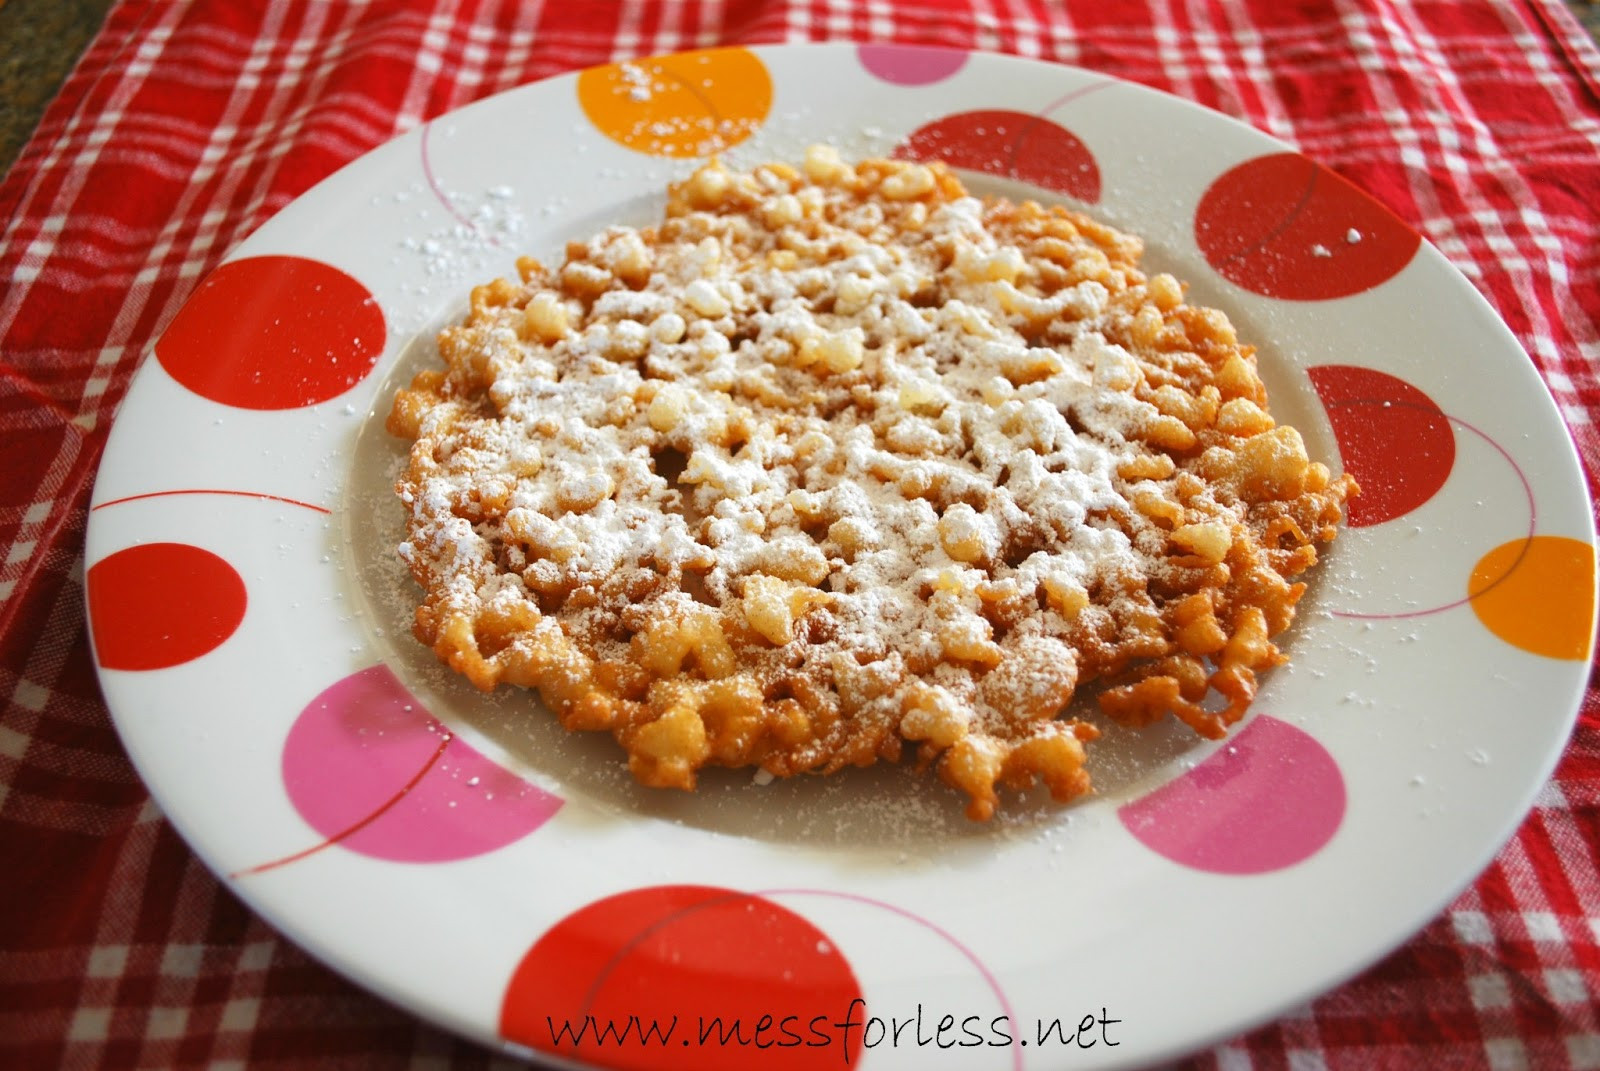 Best Funnel Cake Recipe  Funnel Cake Recipe Mess for Less